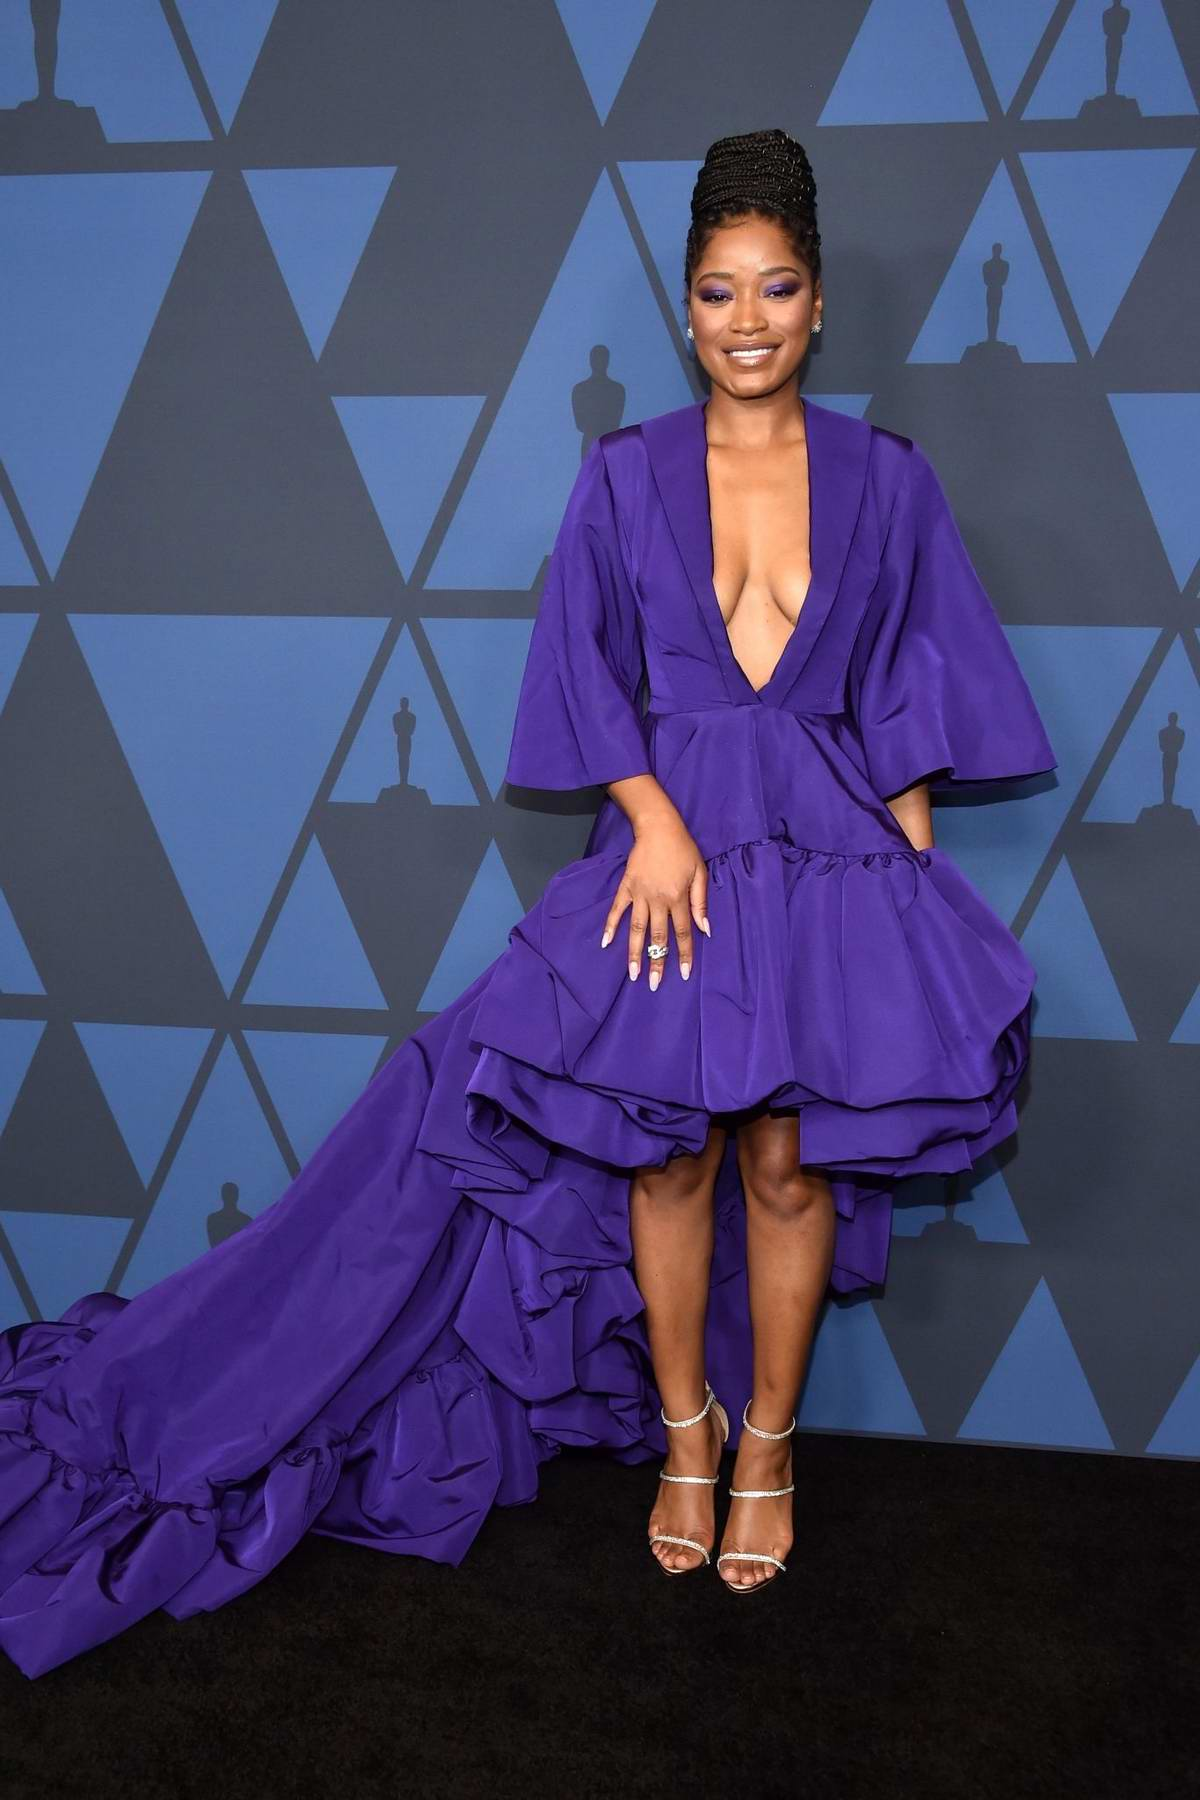 Keke Palmer attends the Academy of Motion Picture Arts and Sciences' 11th Annual Governors Awards in Hollywood, California